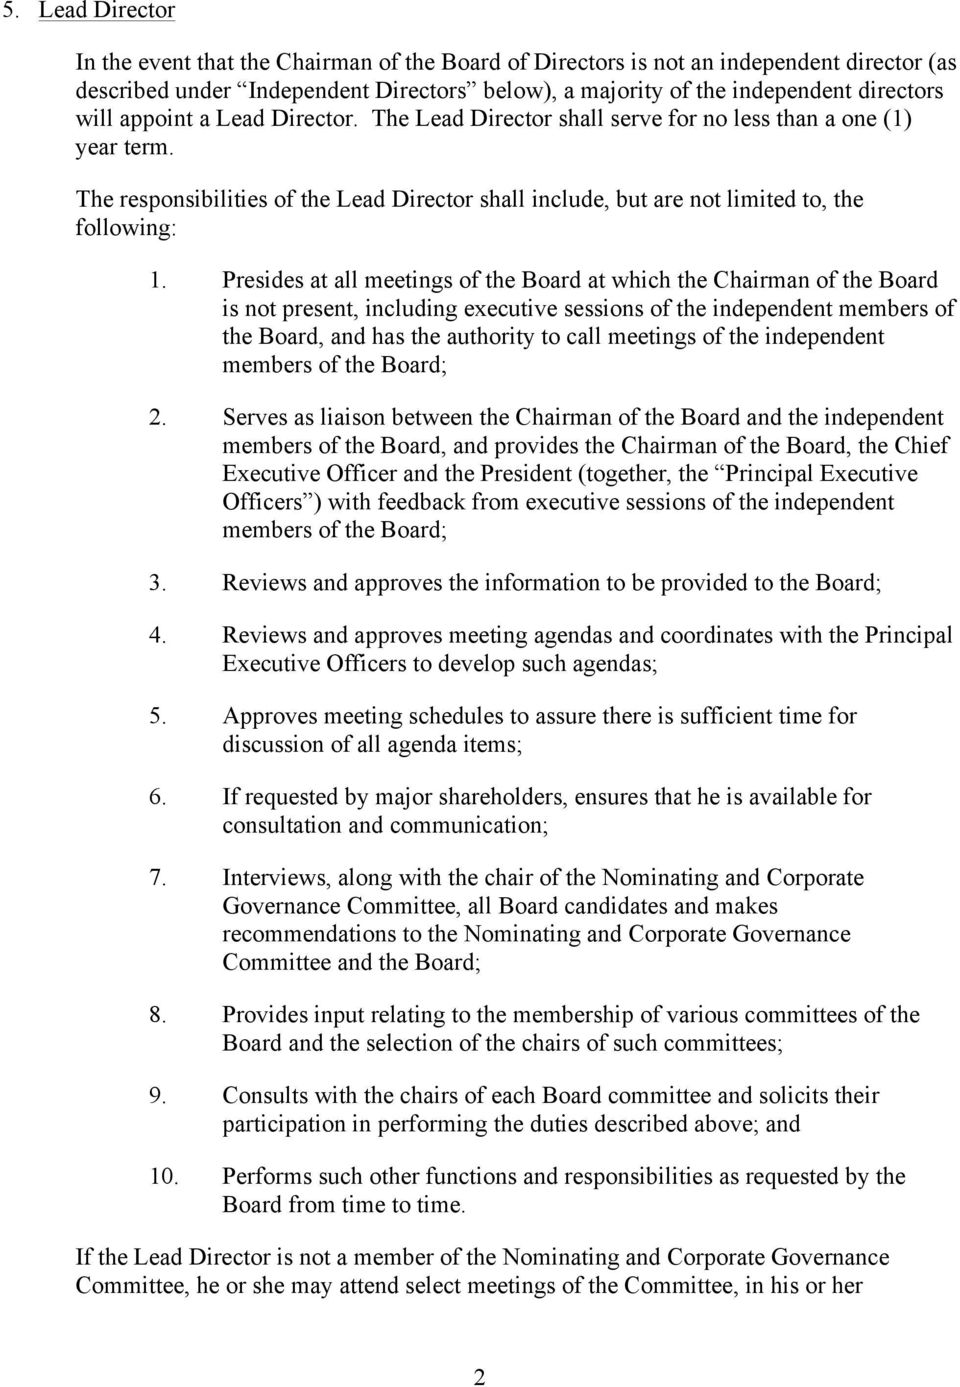 Presides at all meetings of the Board at which the Chairman of the Board is not present, including executive sessions of the independent members of the Board, and has the authority to call meetings